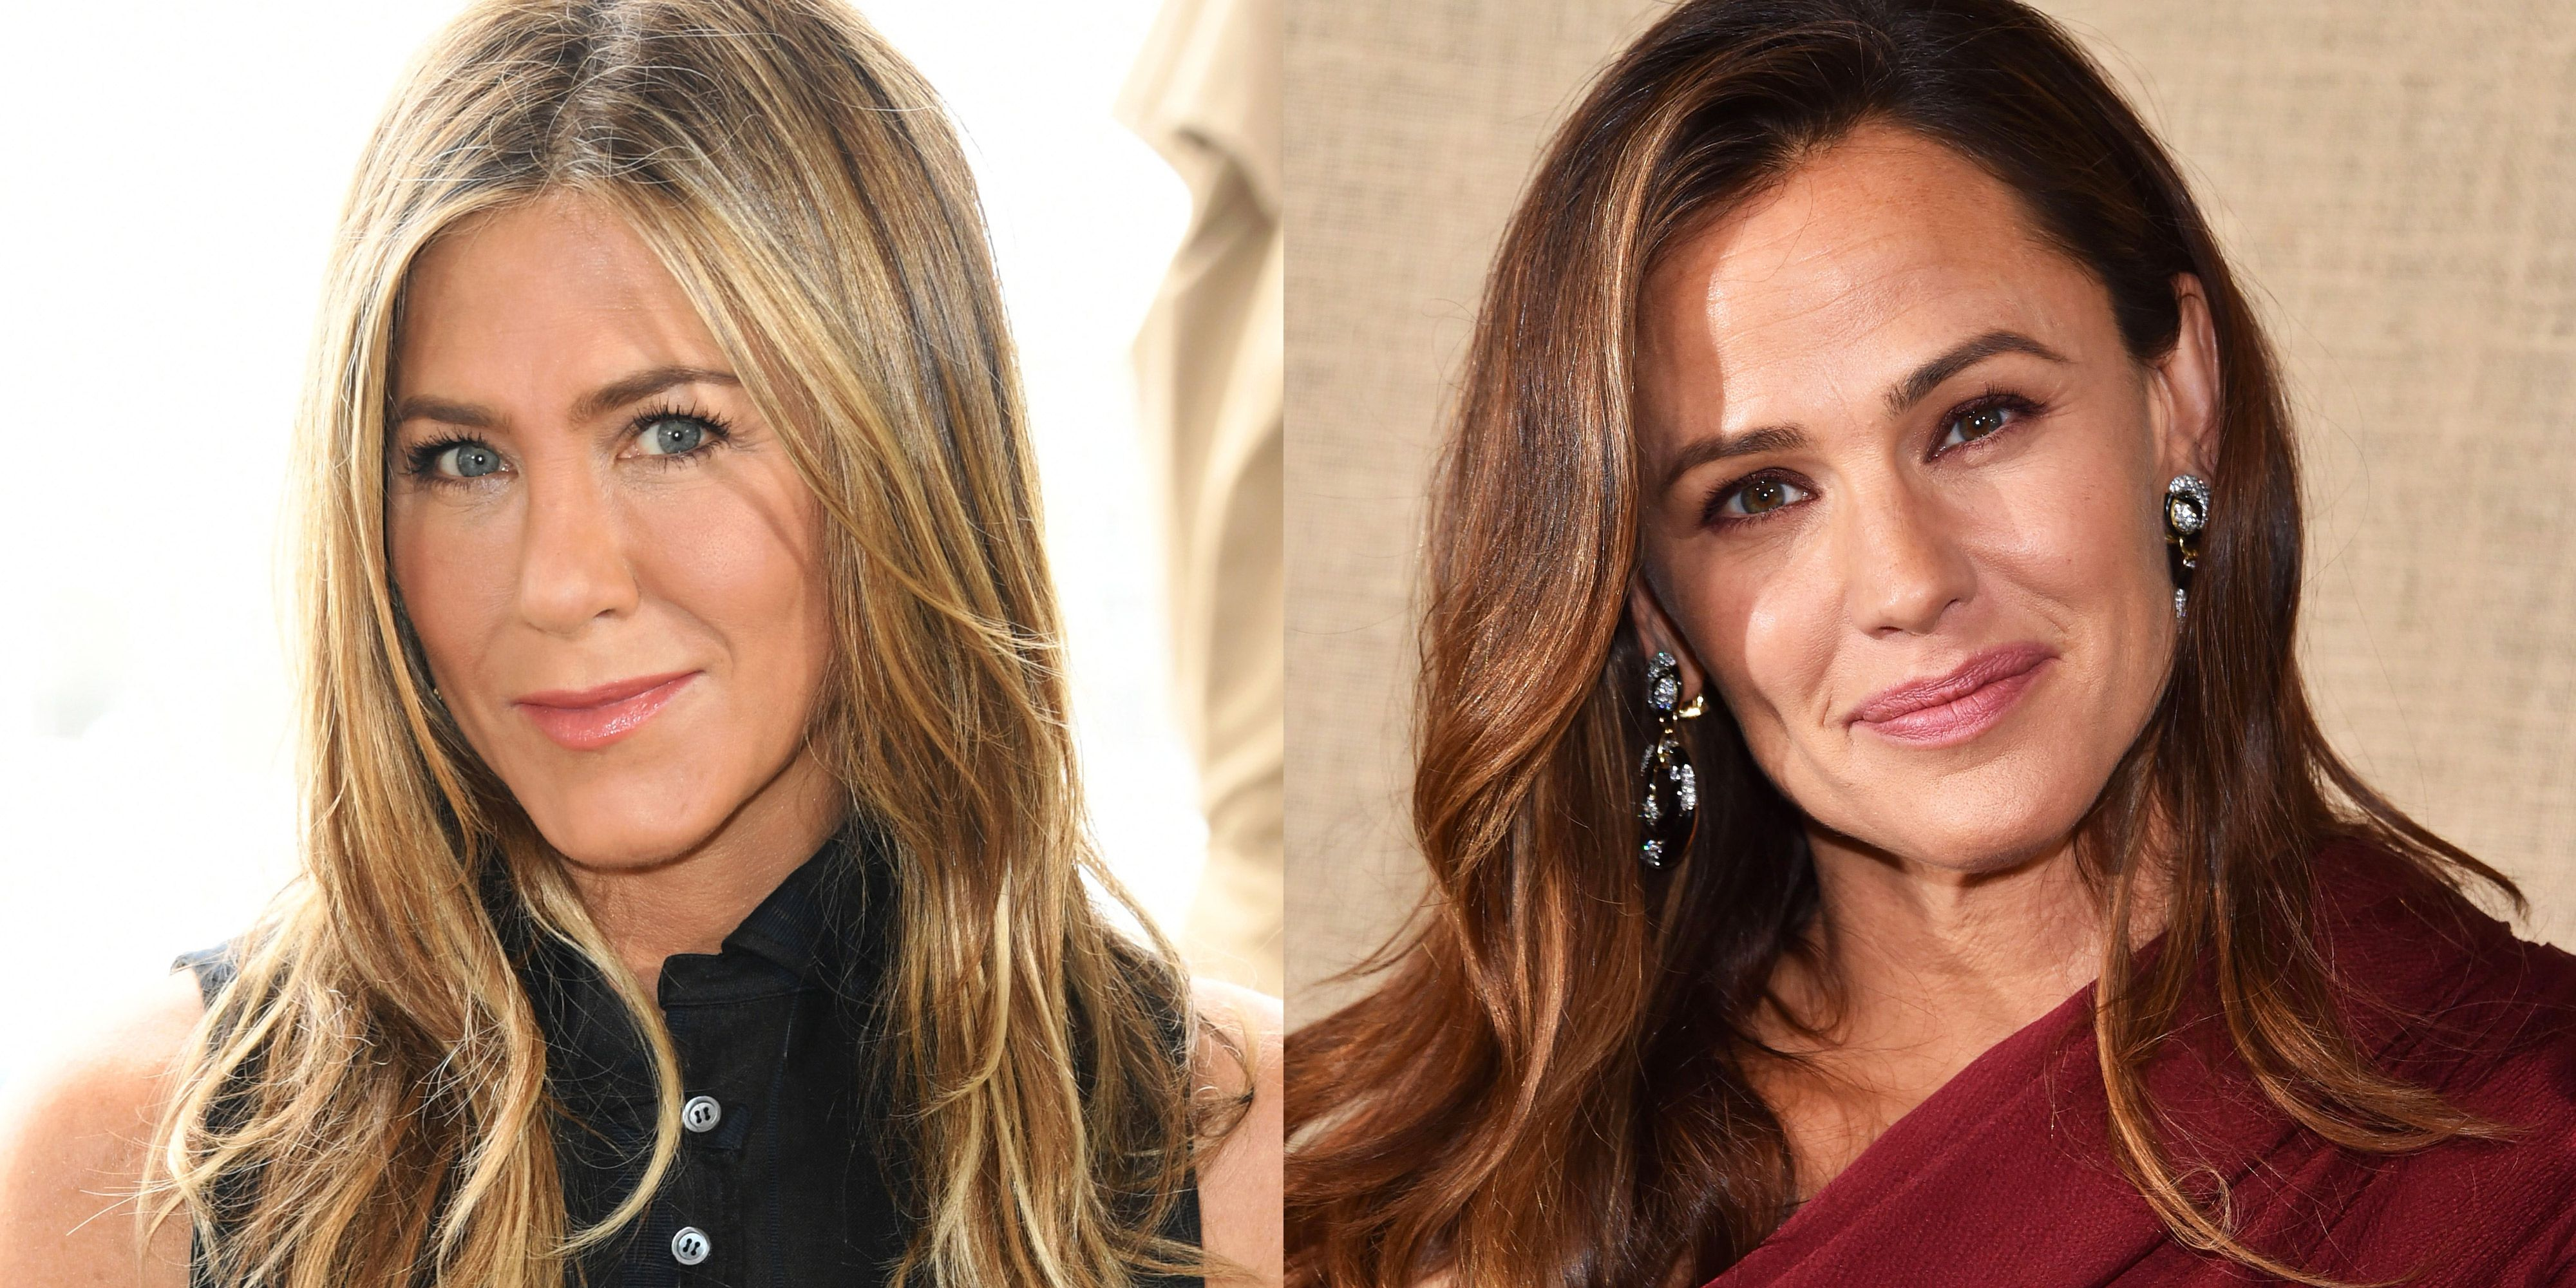 Jennifer Garner Films 'Friends' Scene With Legos to Welcome Jennifer Aniston to Instagram